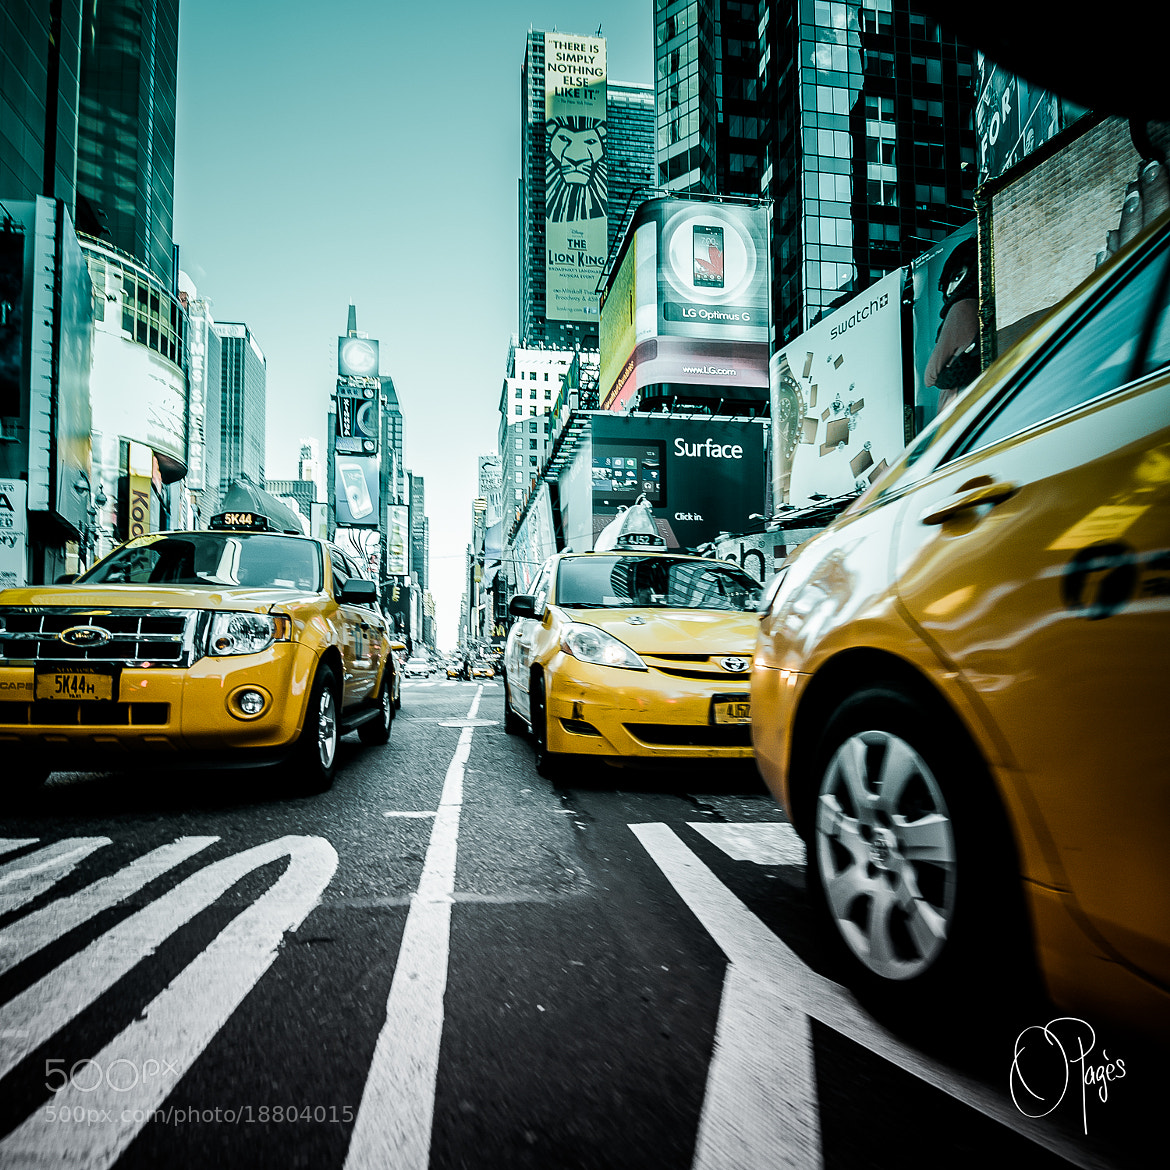 Photograph Times Square by Olivier Pagès on 500px